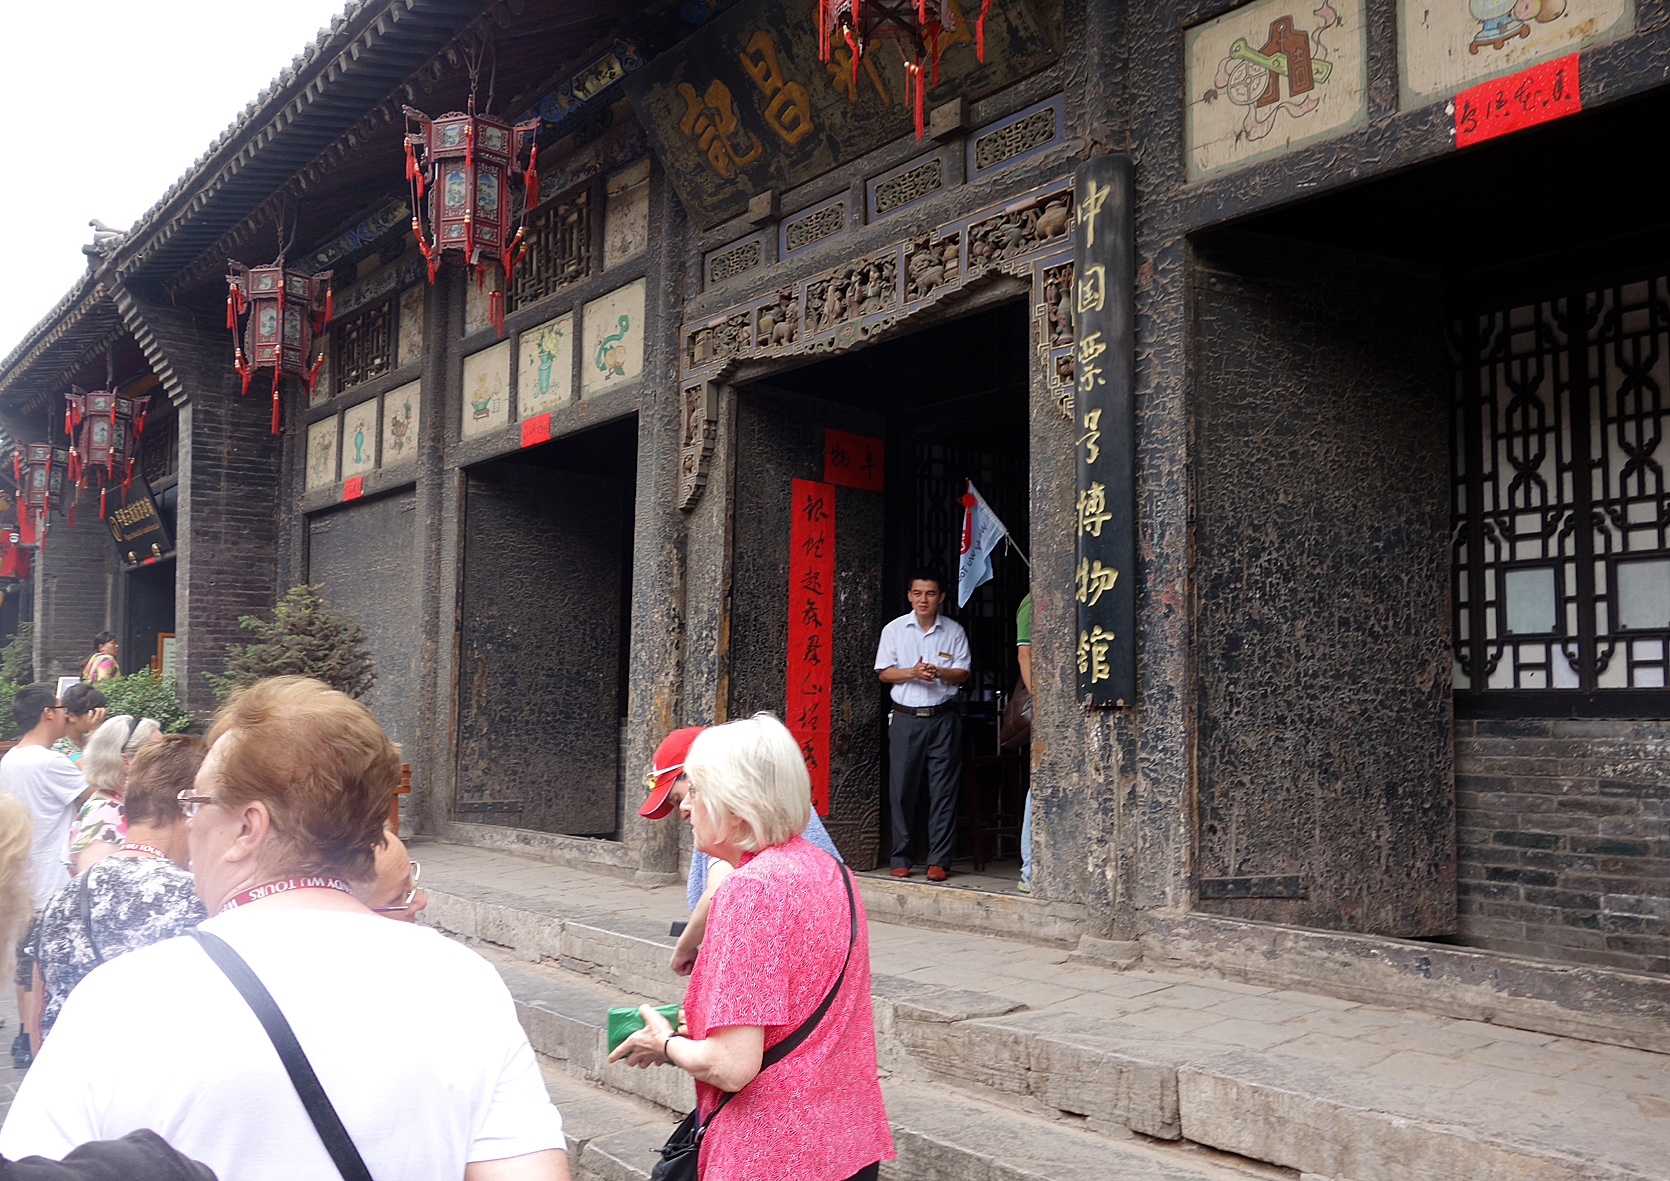 Pingyao street frontage of Ri Sheng Chang bank